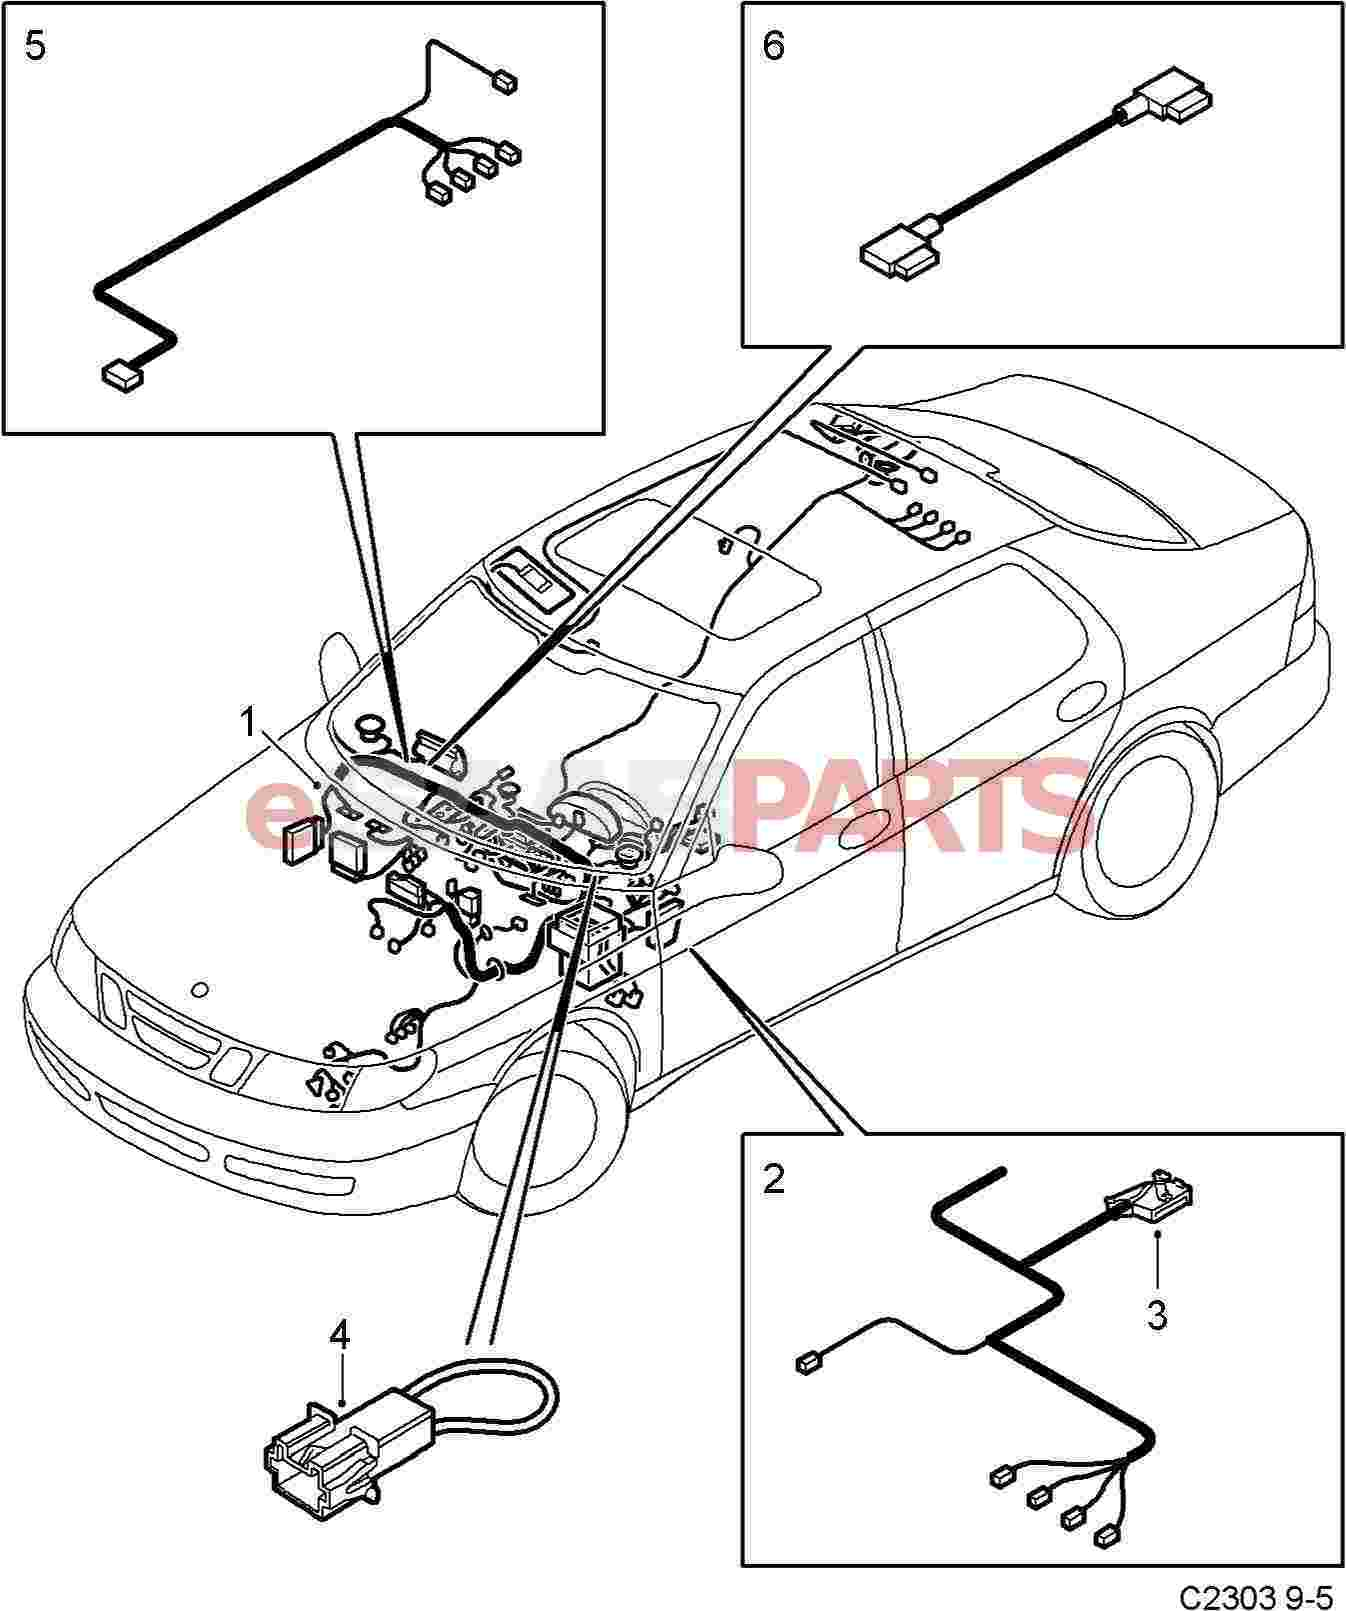 Esaabparts saab 9 5 9600 > electrical parts > wiring harness > instrument panel